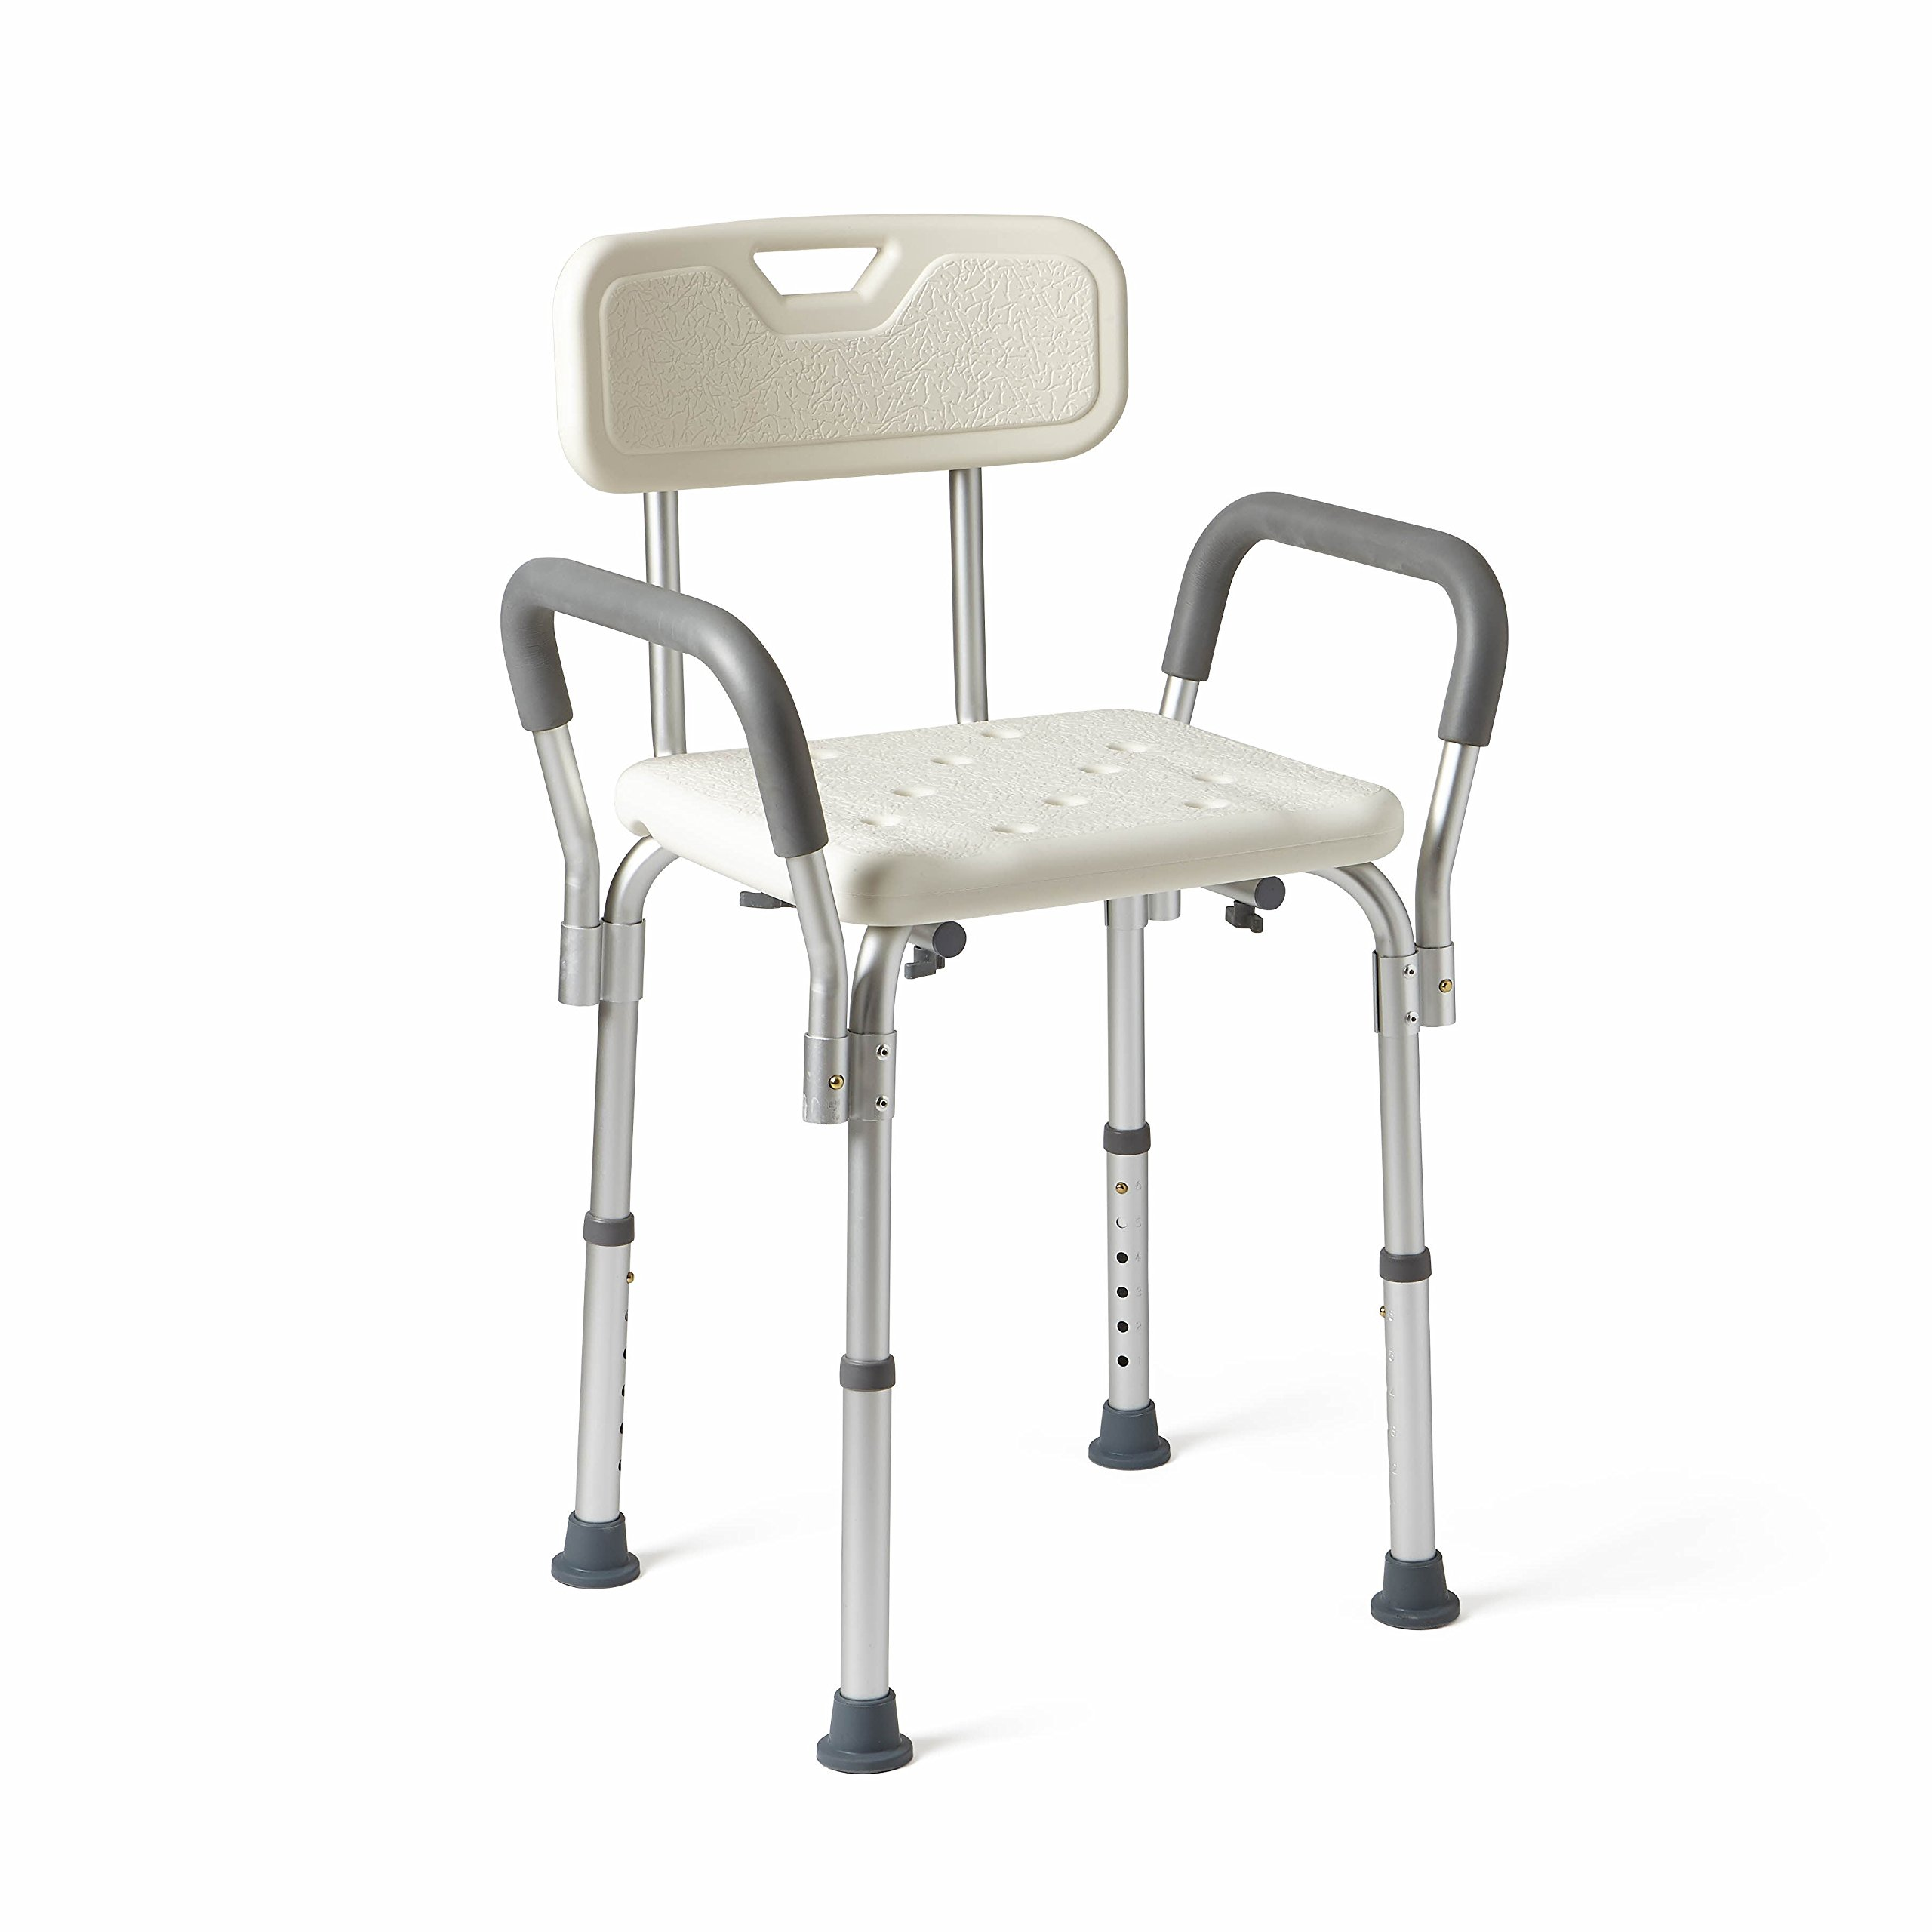 Medline Shower Chair Bath Seat with Padded Armrests and Back, Great for Bathtubs, Supports up to 350 lbs by Medline